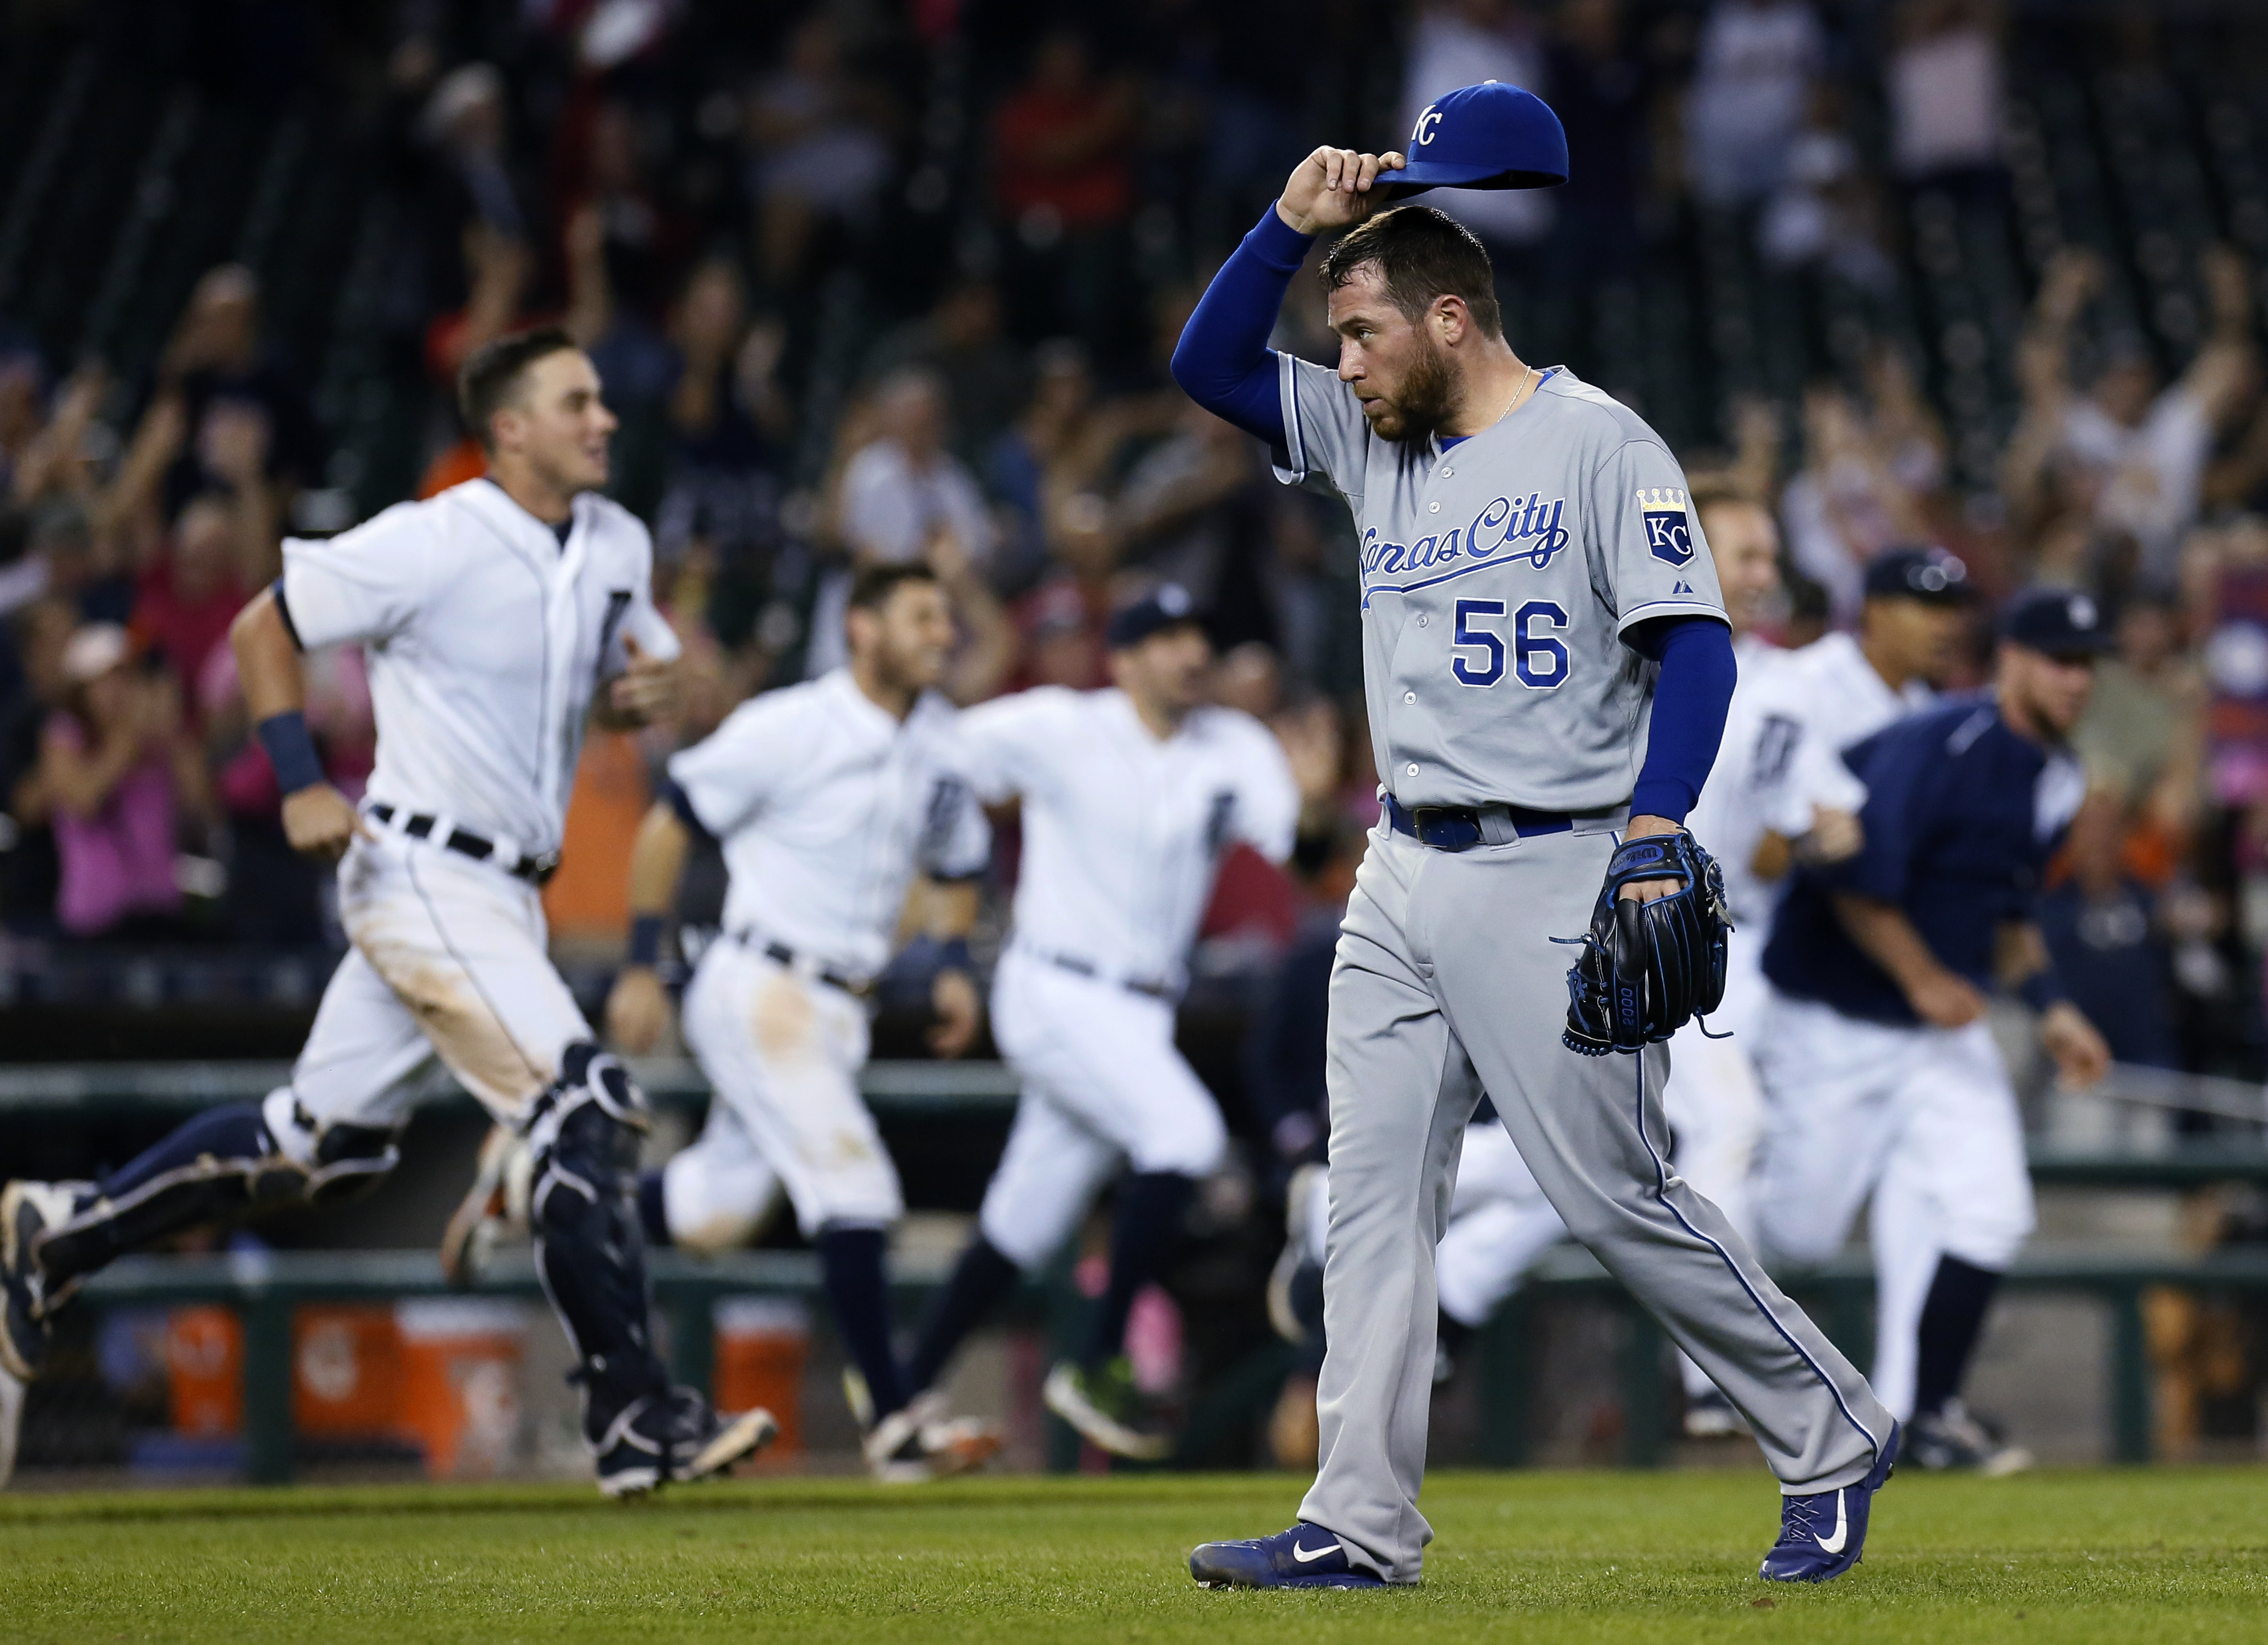 Kansas City Royals pitcher Greg Holland (56) walks off the field after giving up a game-winning RBI single to Detroit Tigers' Dixon Machado during the 12th inning of a baseball game Friday, Sept. 18, 2015, in Detroit. The Tigers defeated the Royals 5-4. (